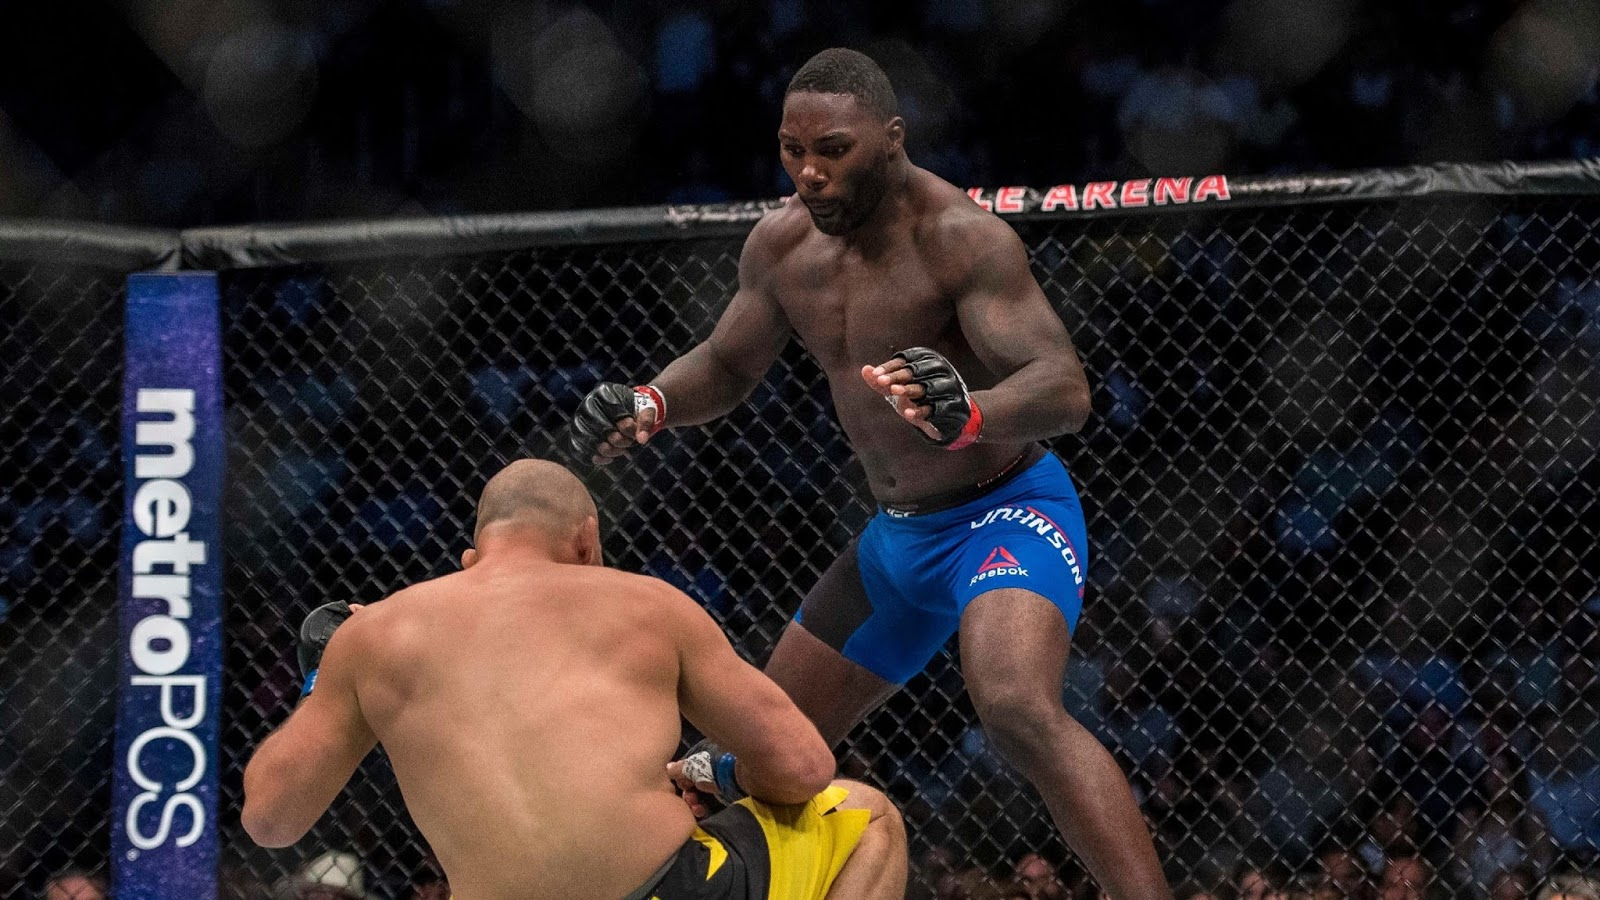 ANTHONY RUMBLE JOHNSON VS. GLOVER TEIXEIRA 3